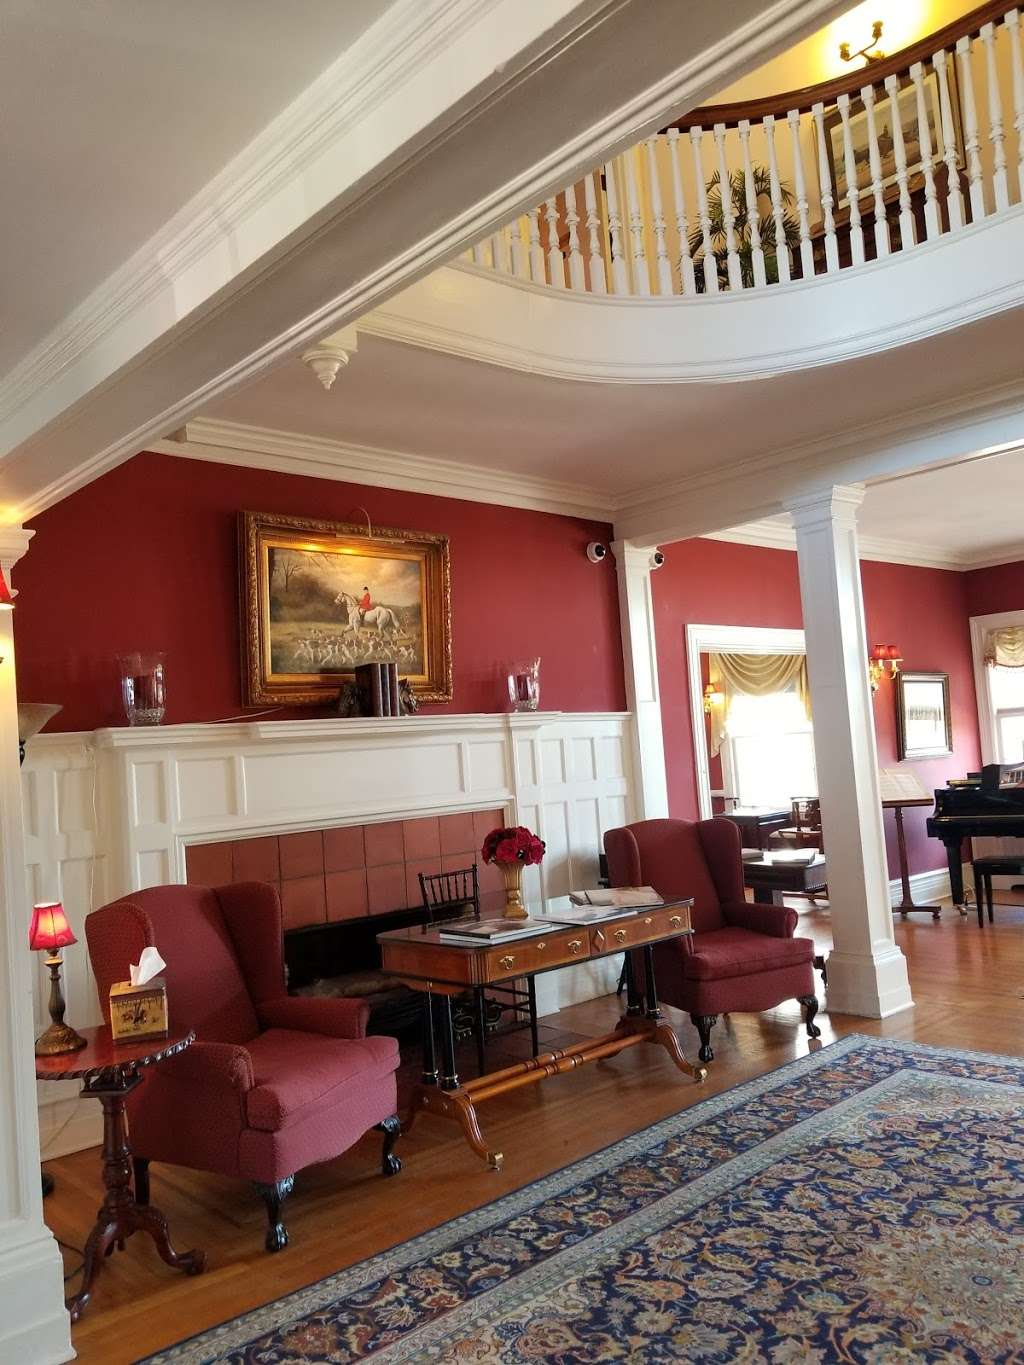 Historic Rosemont Manor - cafe  | Photo 2 of 10 | Address: 16 Rosemont Manor Ln, Berryville, VA 22611, USA | Phone: (540) 955-2834